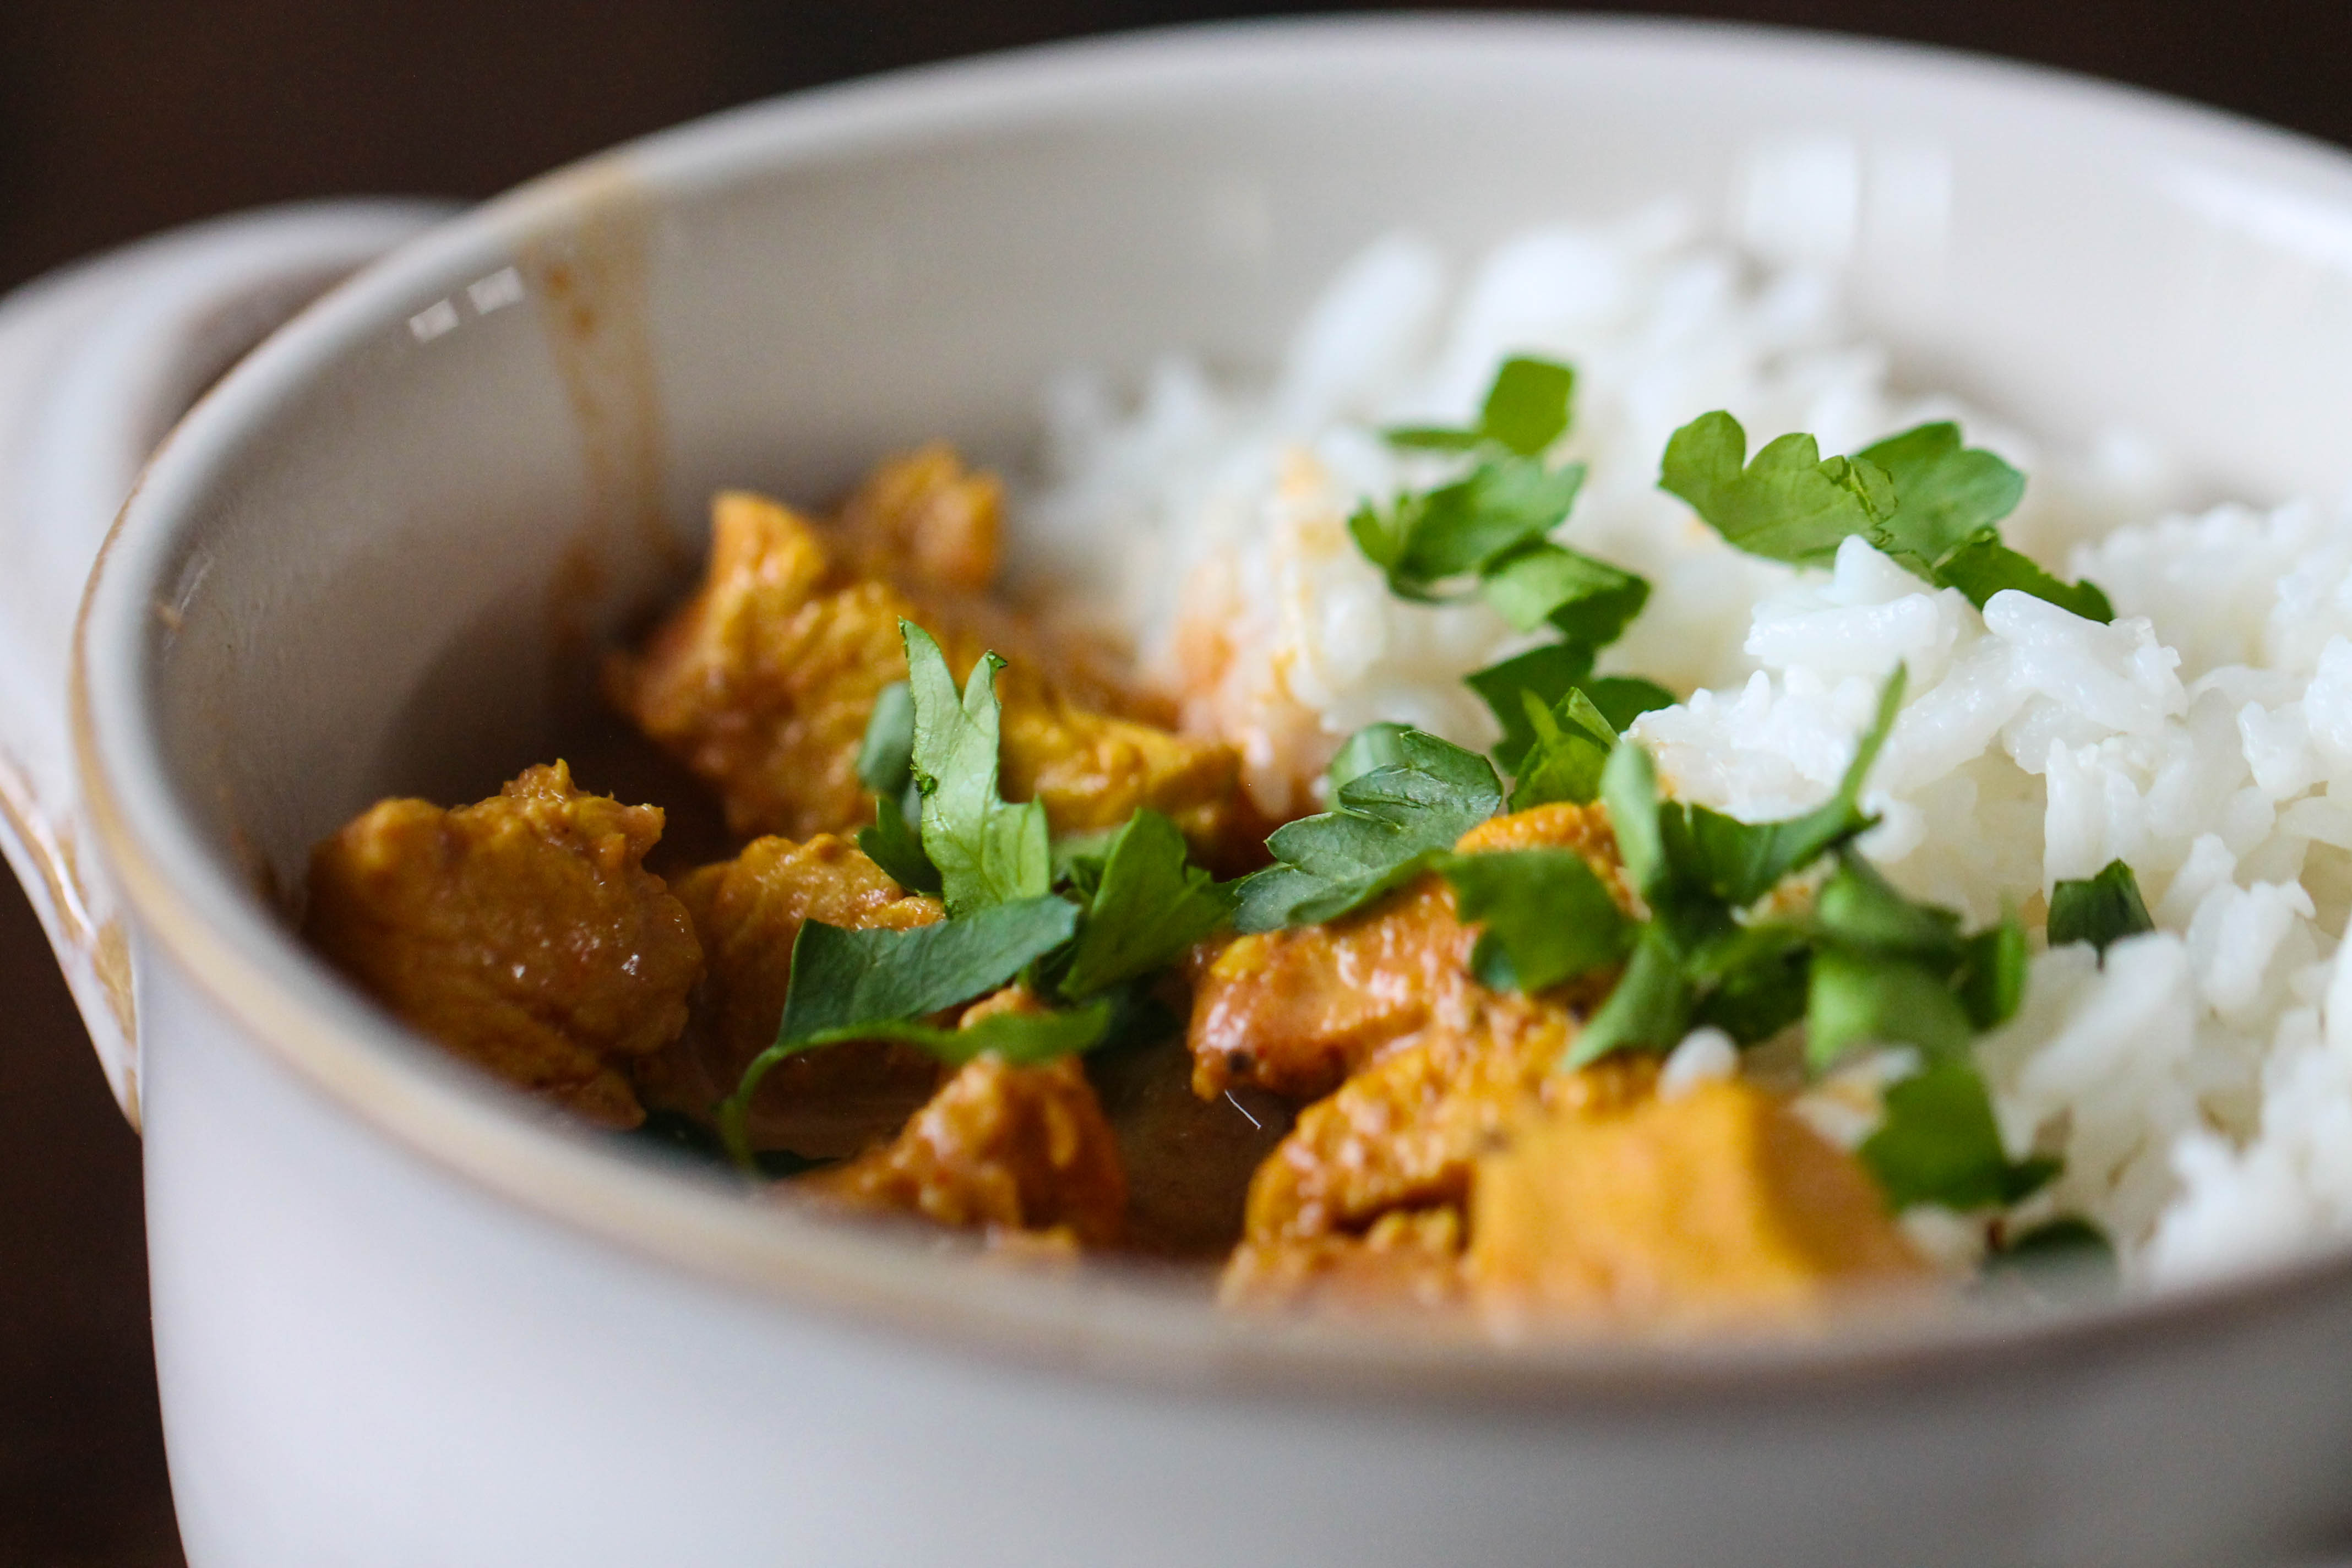 Cooked chicken tikka masala in bowl with rice